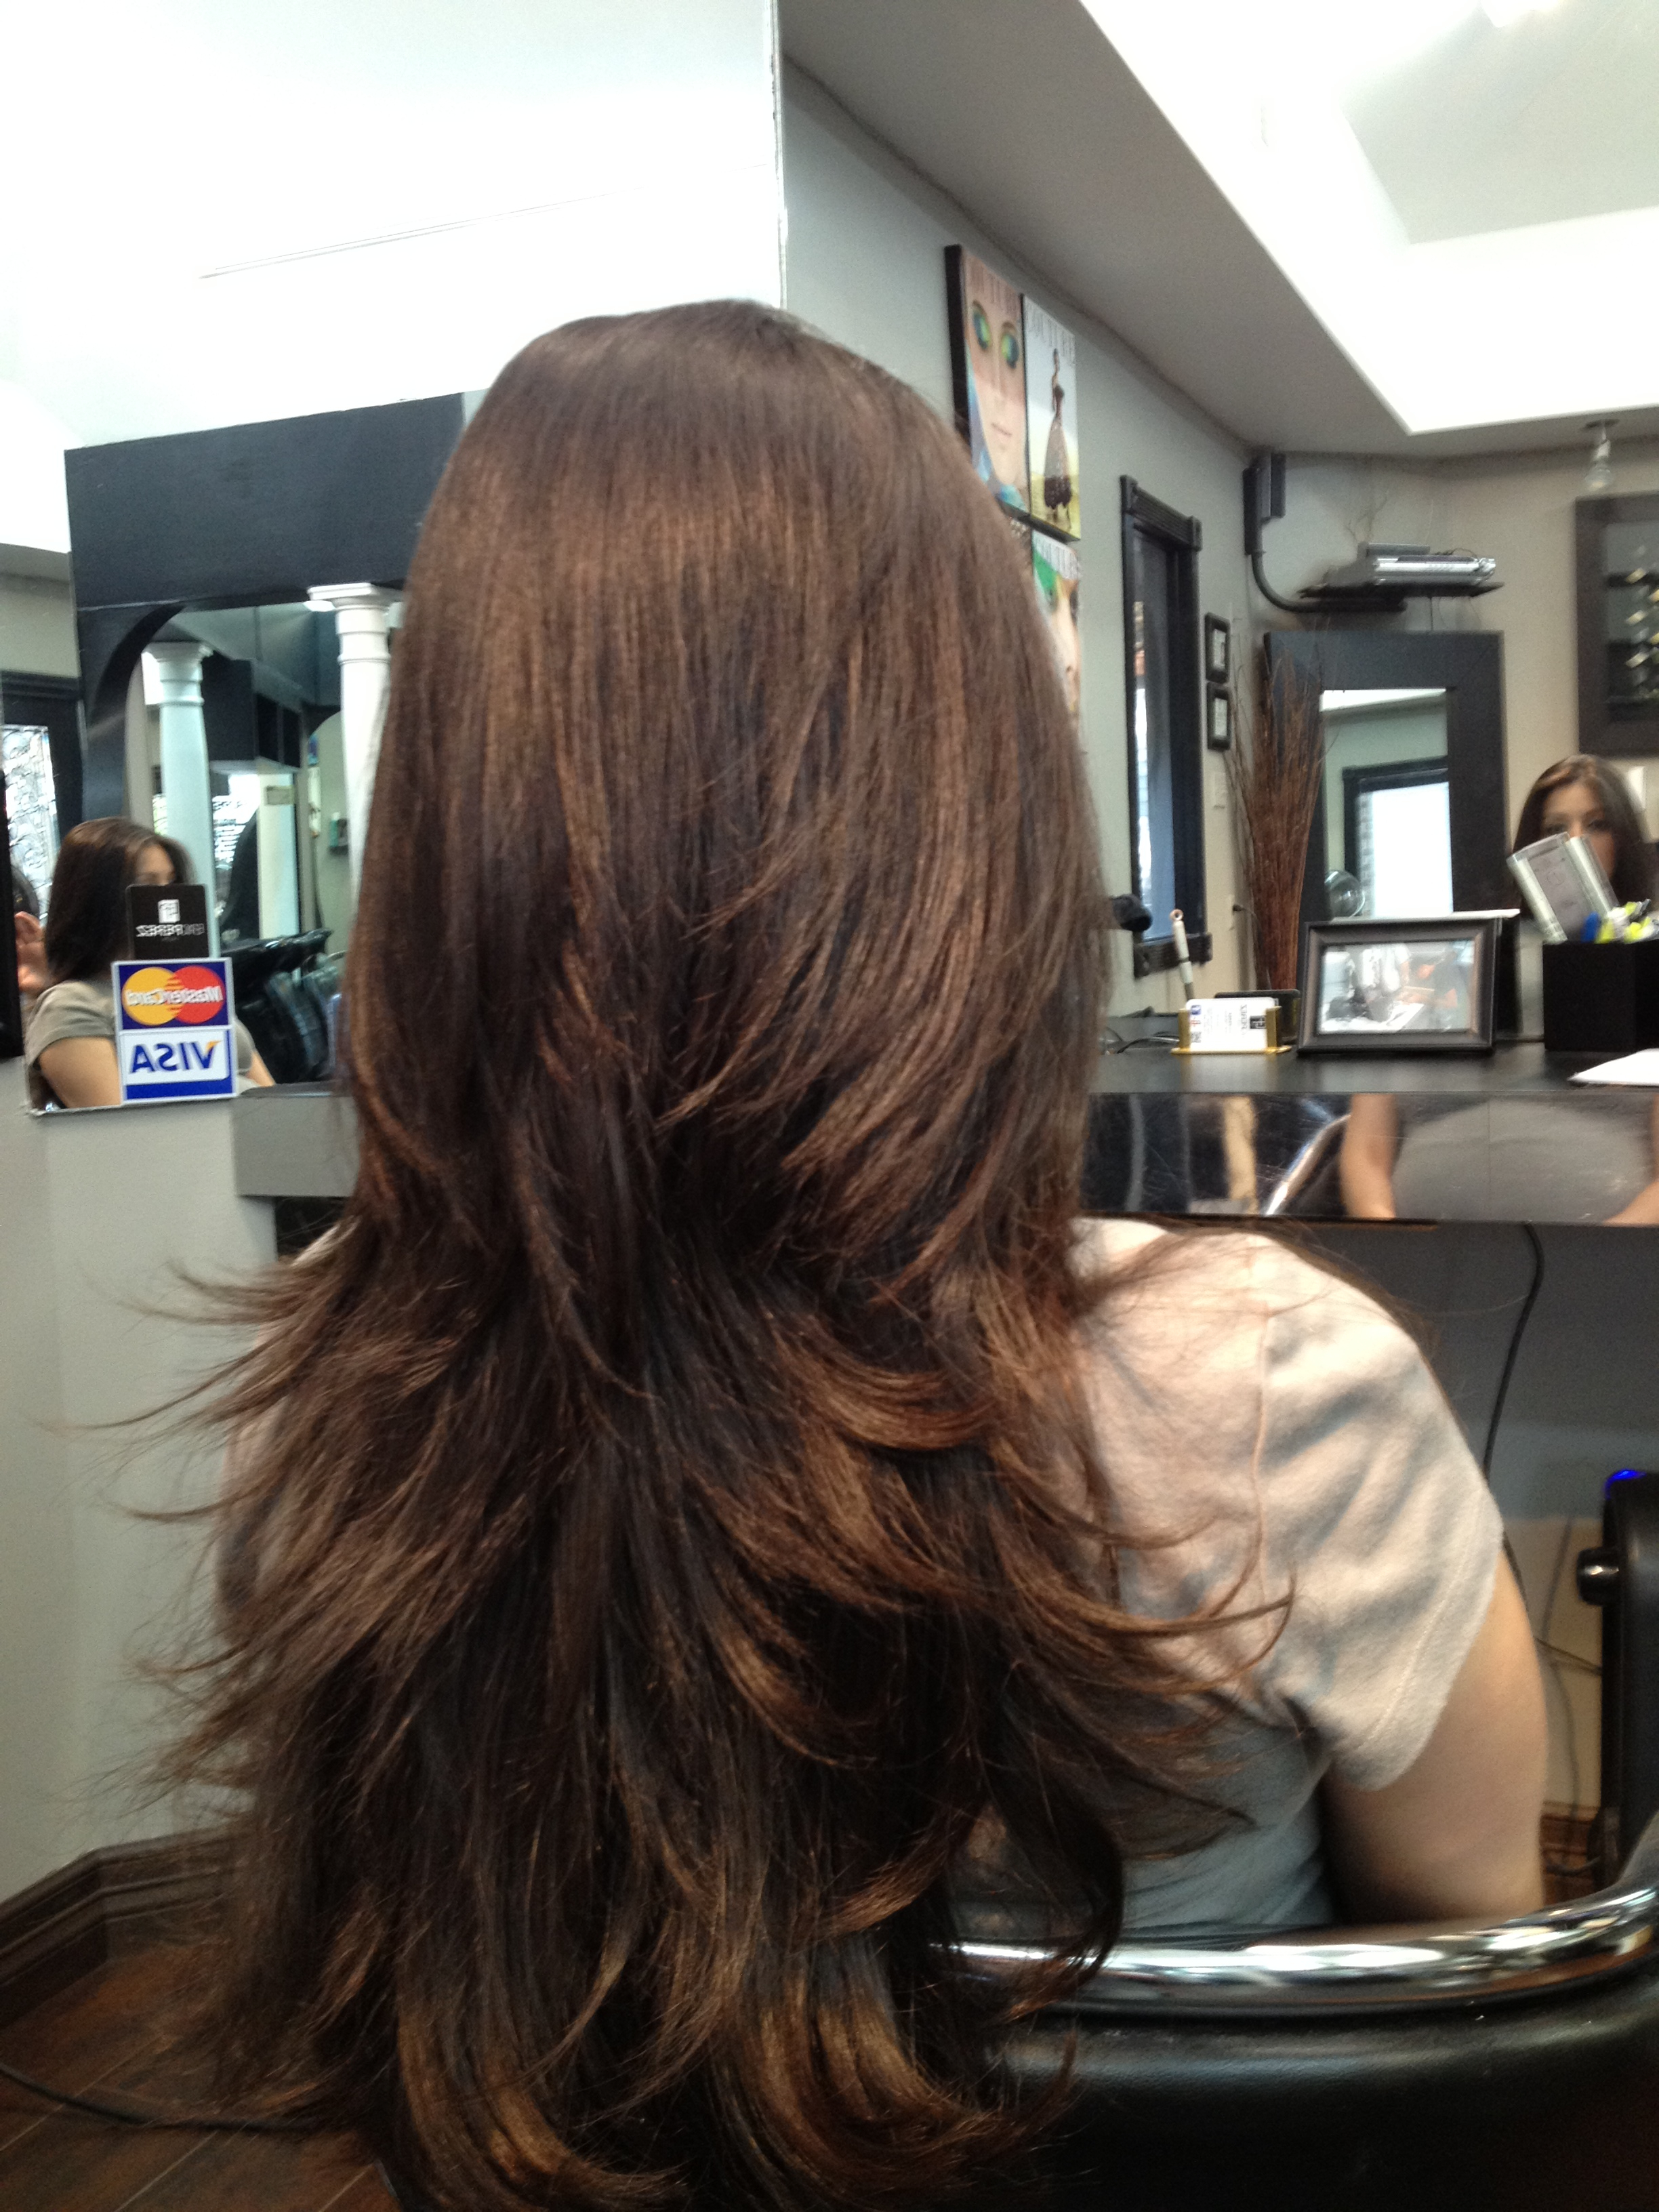 2018 Blowout Ready Layers For Long Hairstyles Intended For Houston Brazilian Blowout « Eric Perez Salon (View 2 of 20)